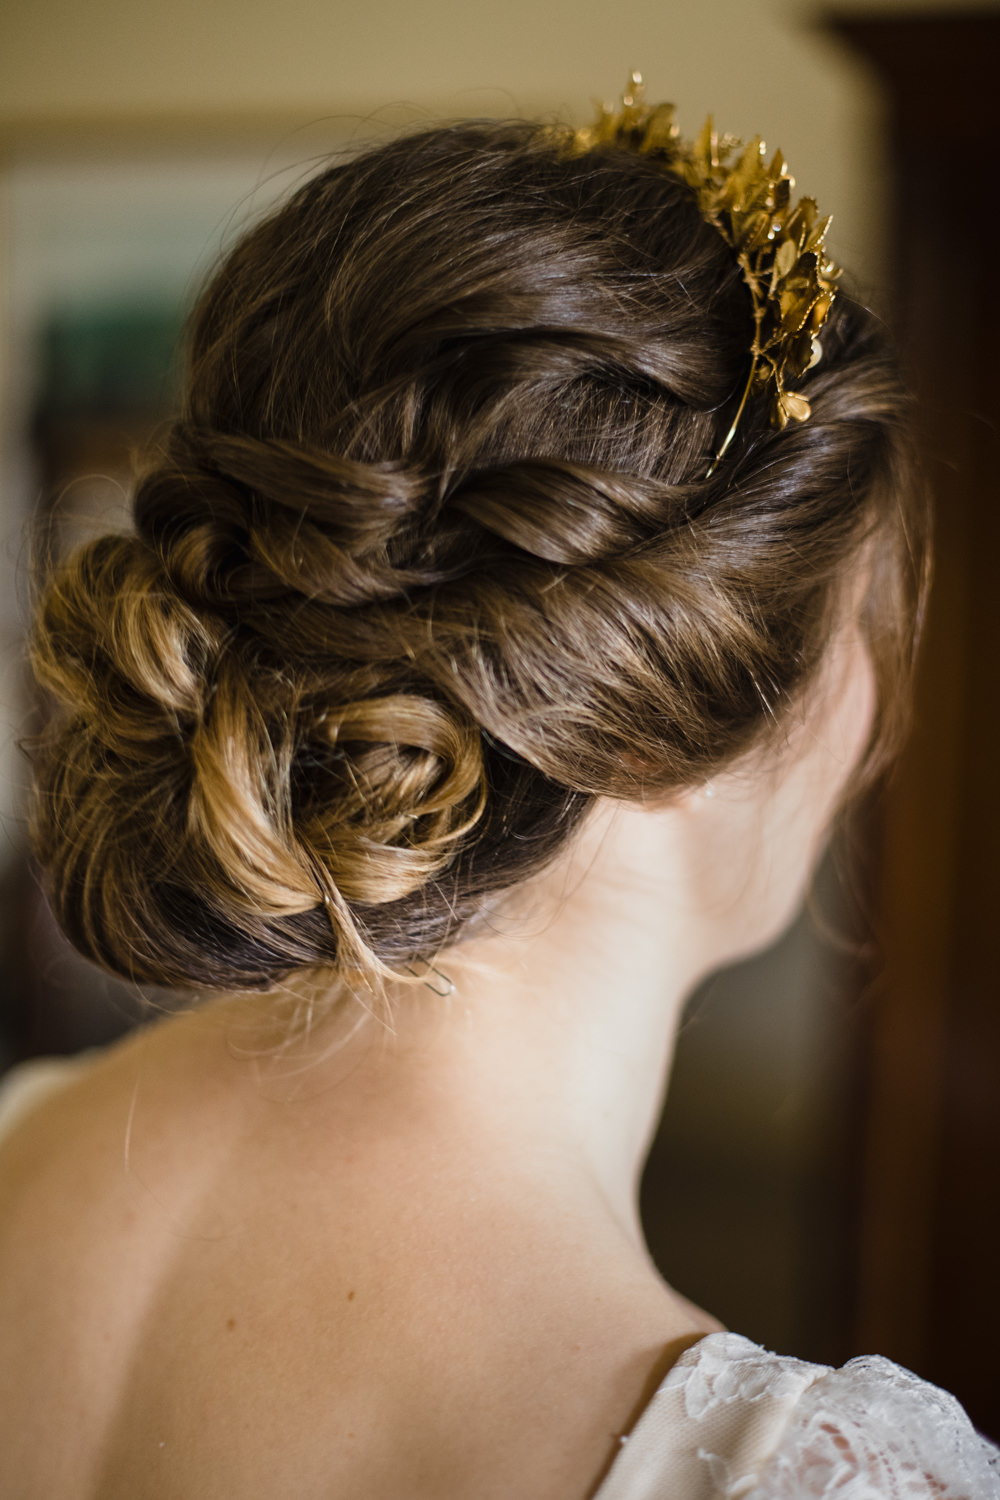 Bride Bridal Hair Style Up Do Twist Curls Fun Laughter Relaxed Wedding Chris Barber Photography